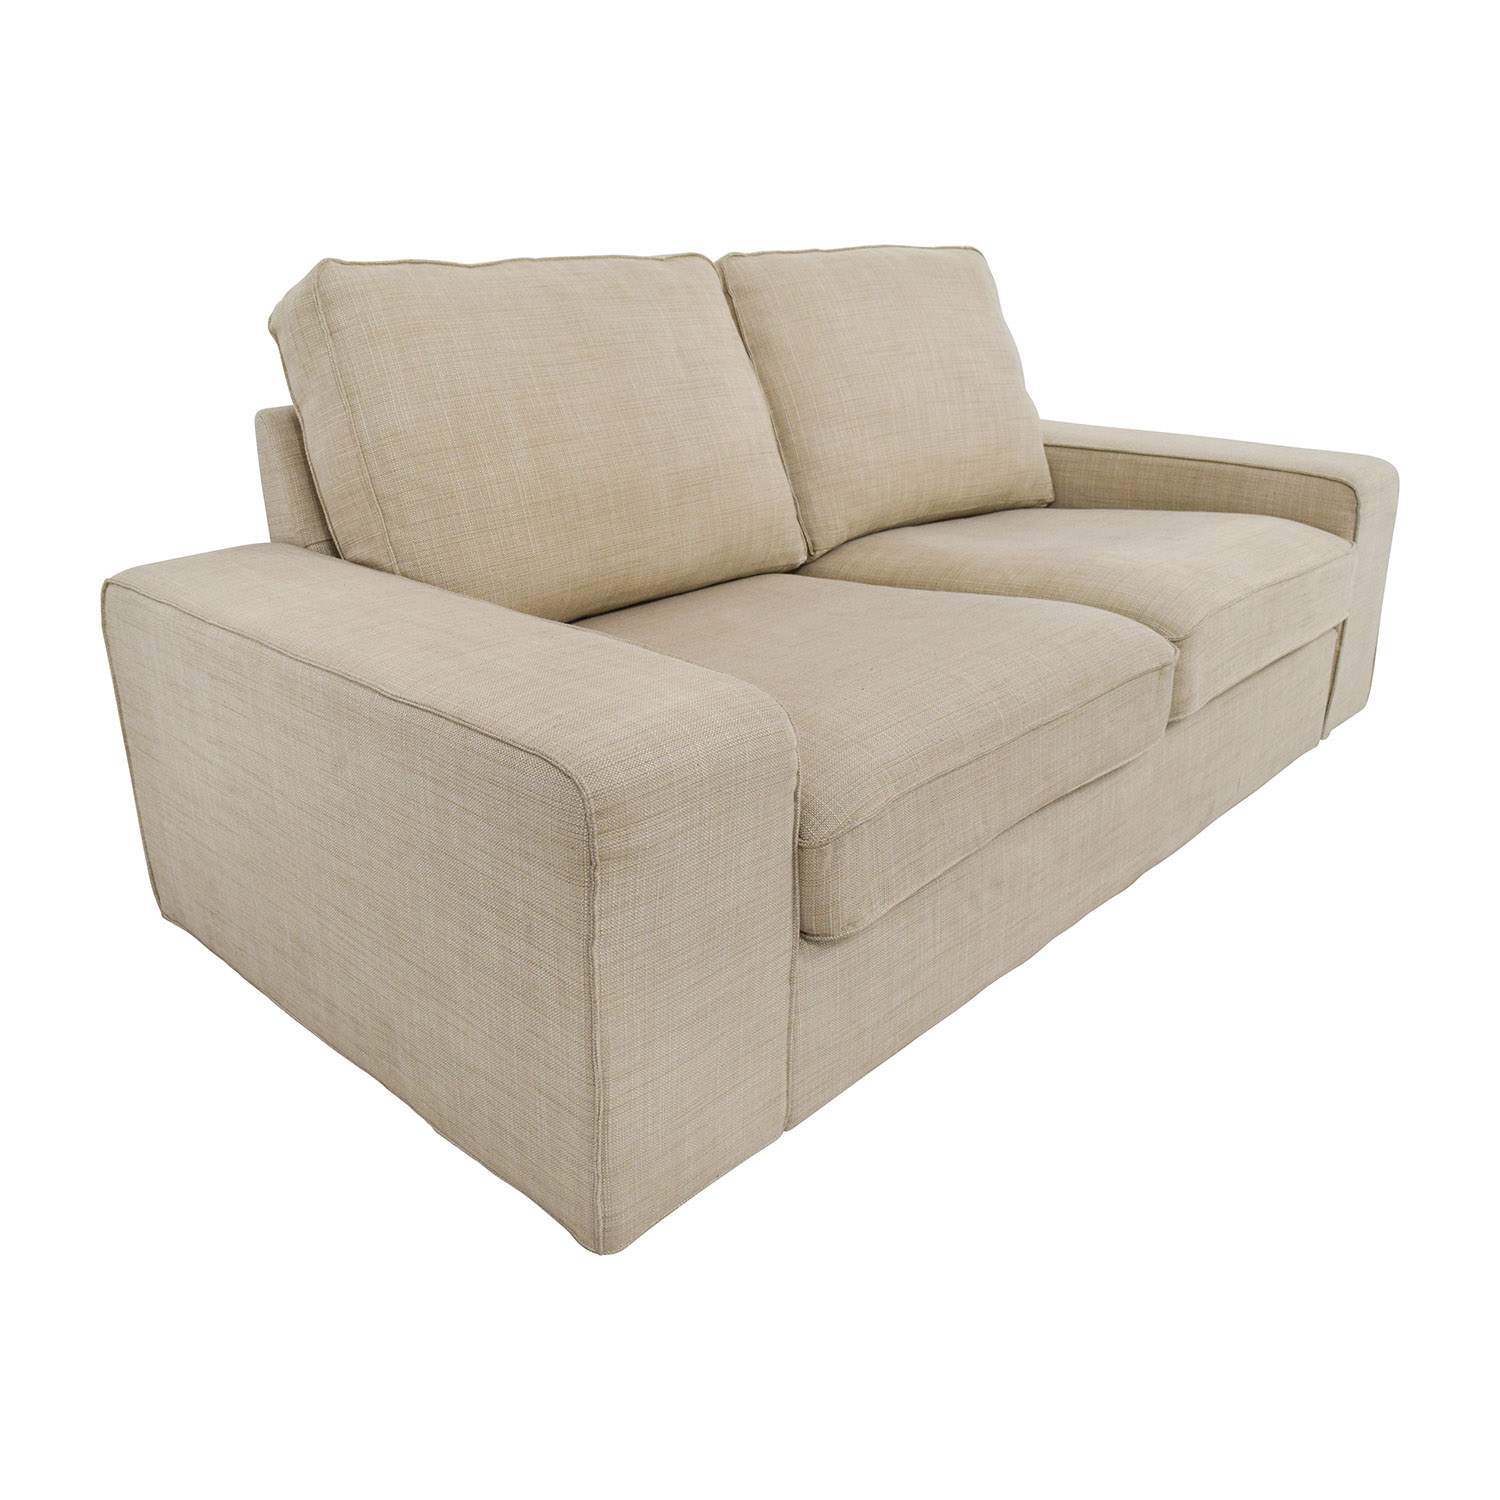 tan sofa and loveseat bed cover malaysia 68 off ikea light beige fabric sofas